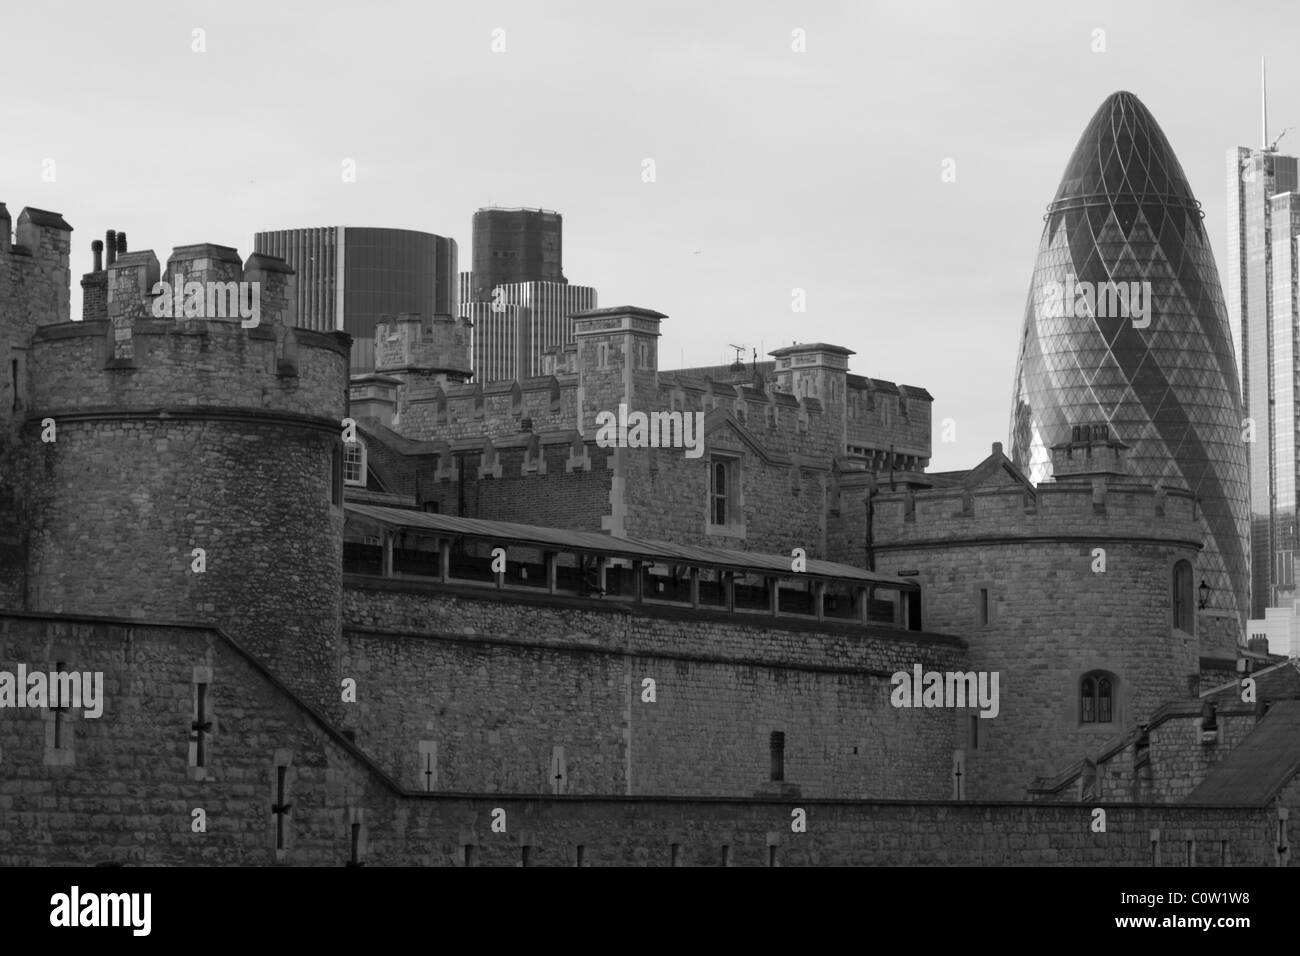 The Tower of London England UK - Stock Image